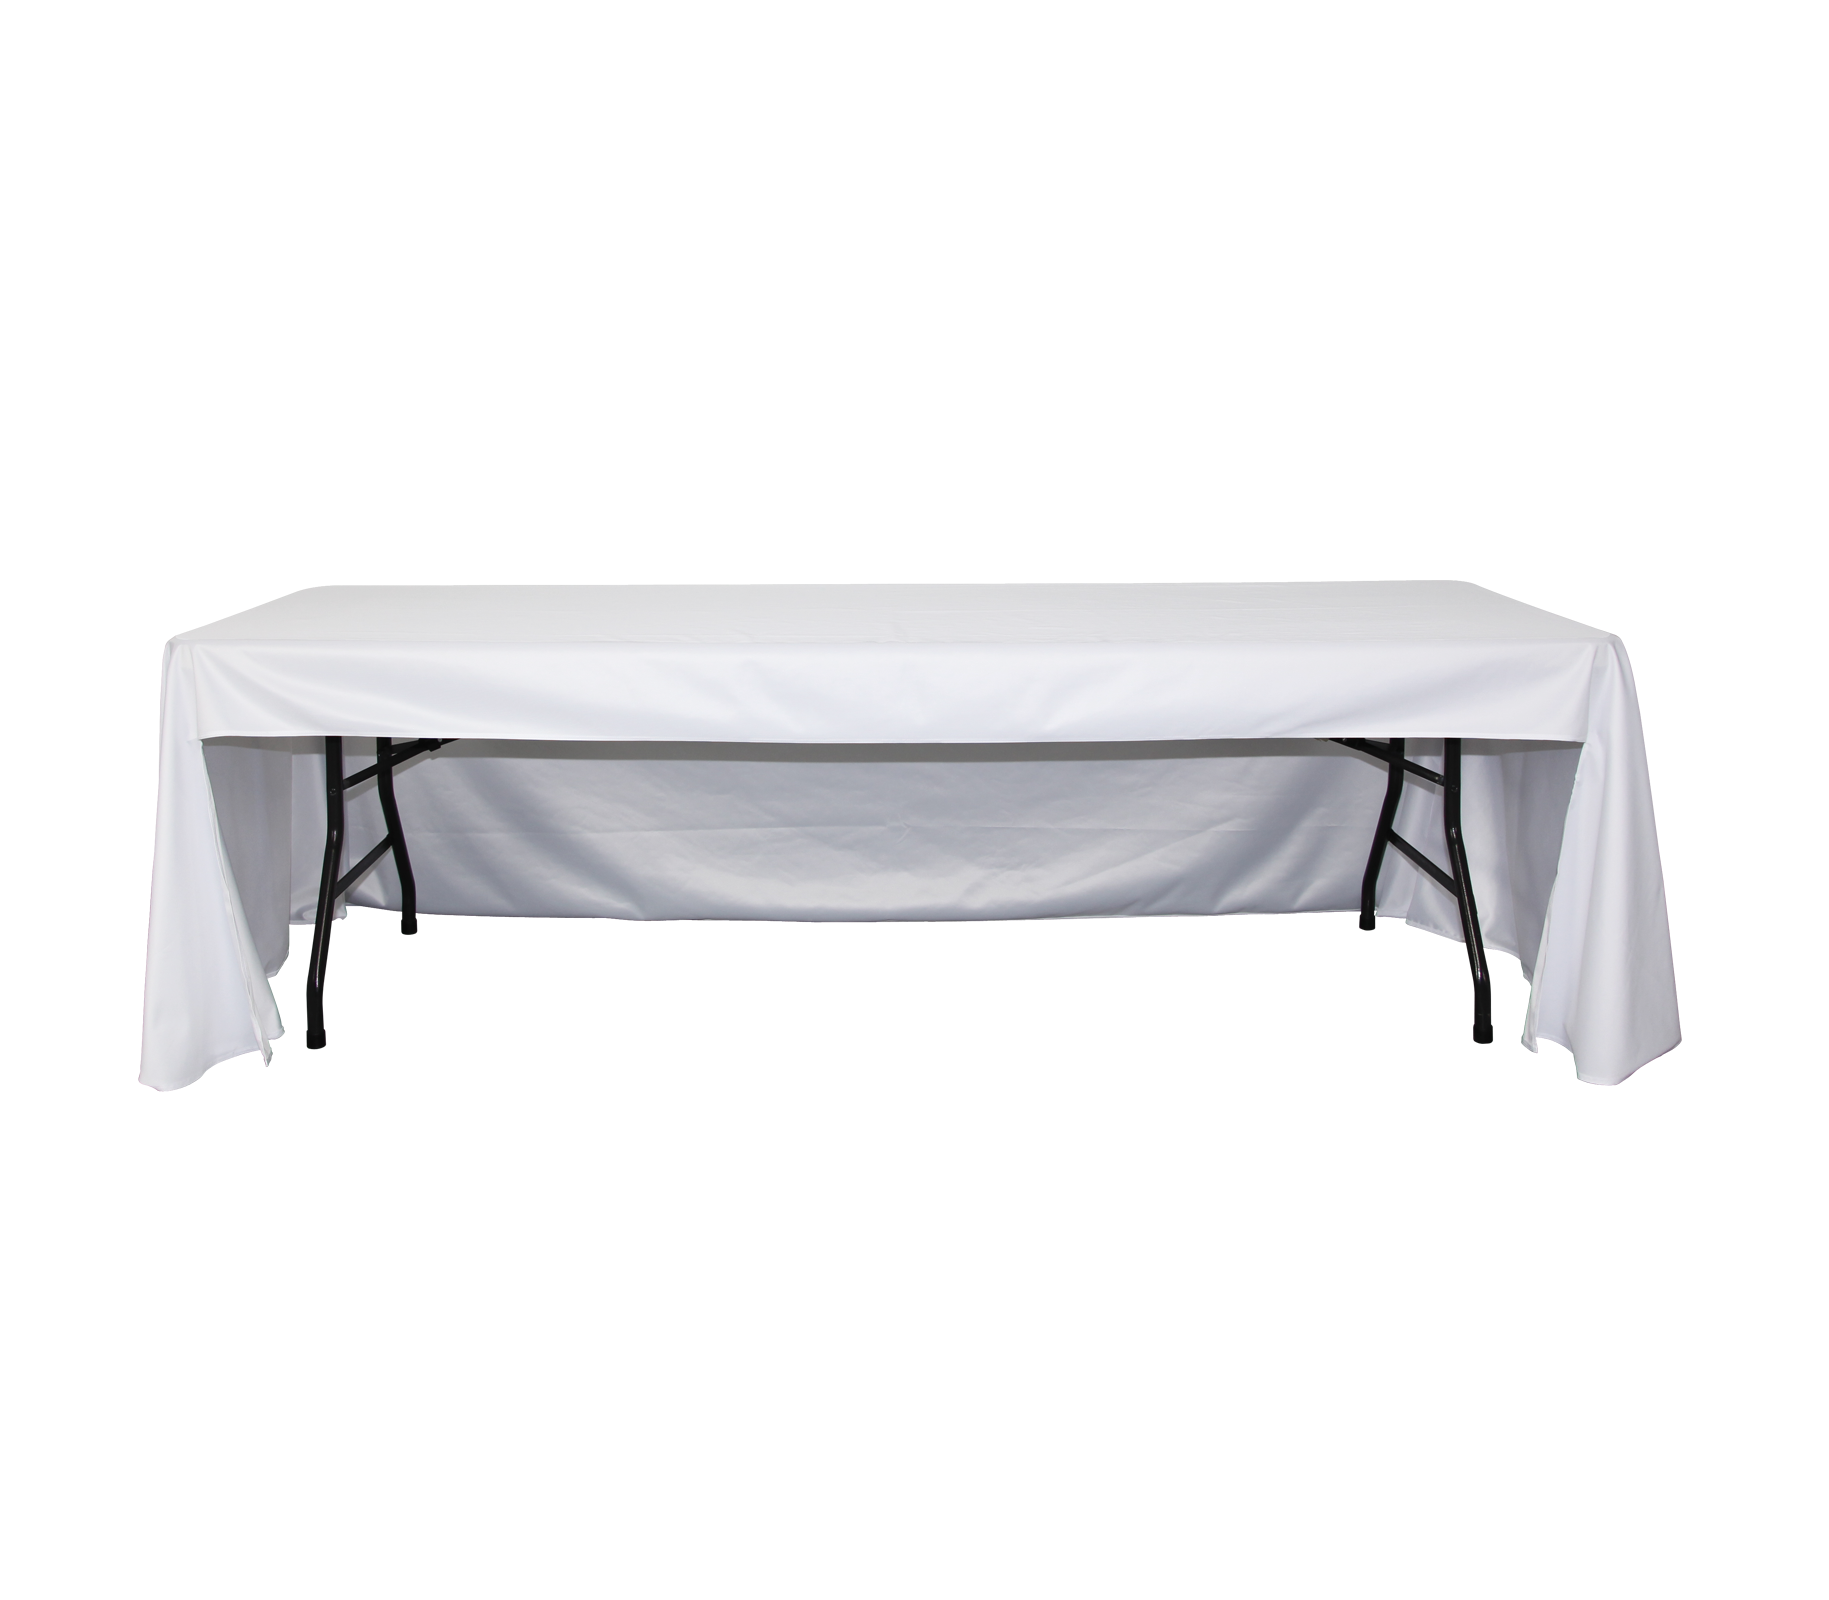 Standard Table Cover w/ All Over Print | Tex Visions